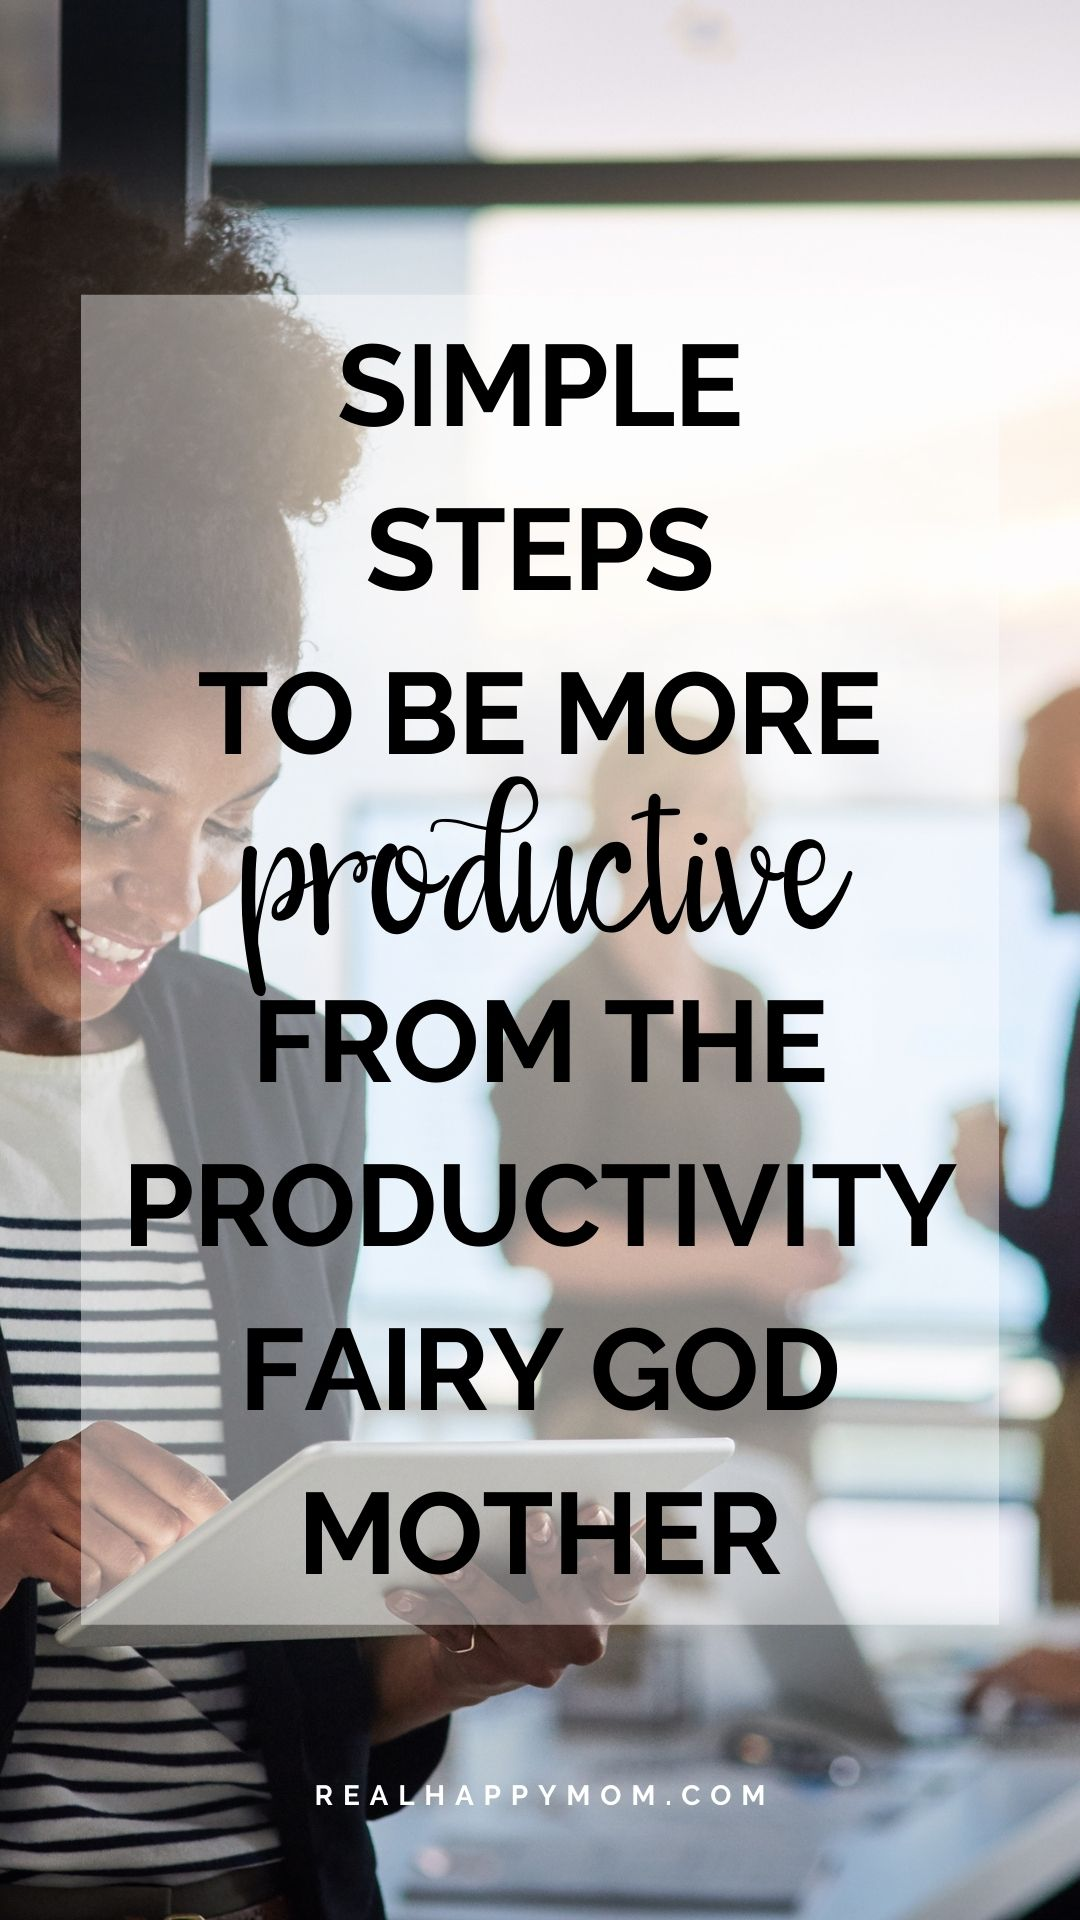 Simple Steps to Be More Productive from the Productivity God Mother